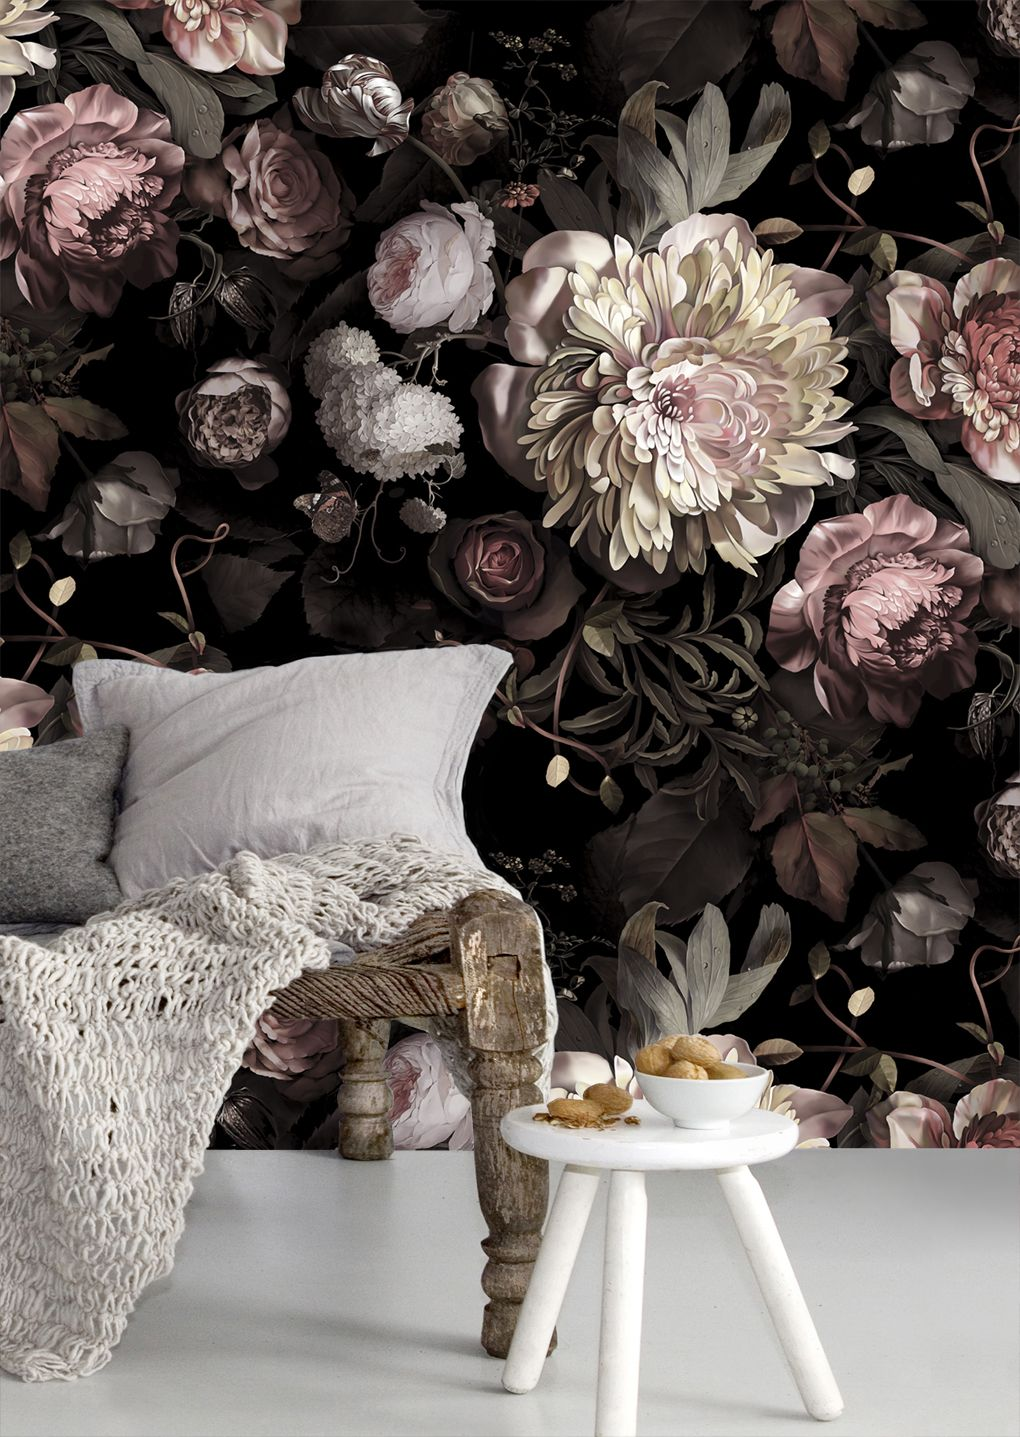 Black floral print wallpaper dark floral wallpaper by ellie cashman - 7 Ways To Update Your Home For Spring Beautiful Wallpaperfloral